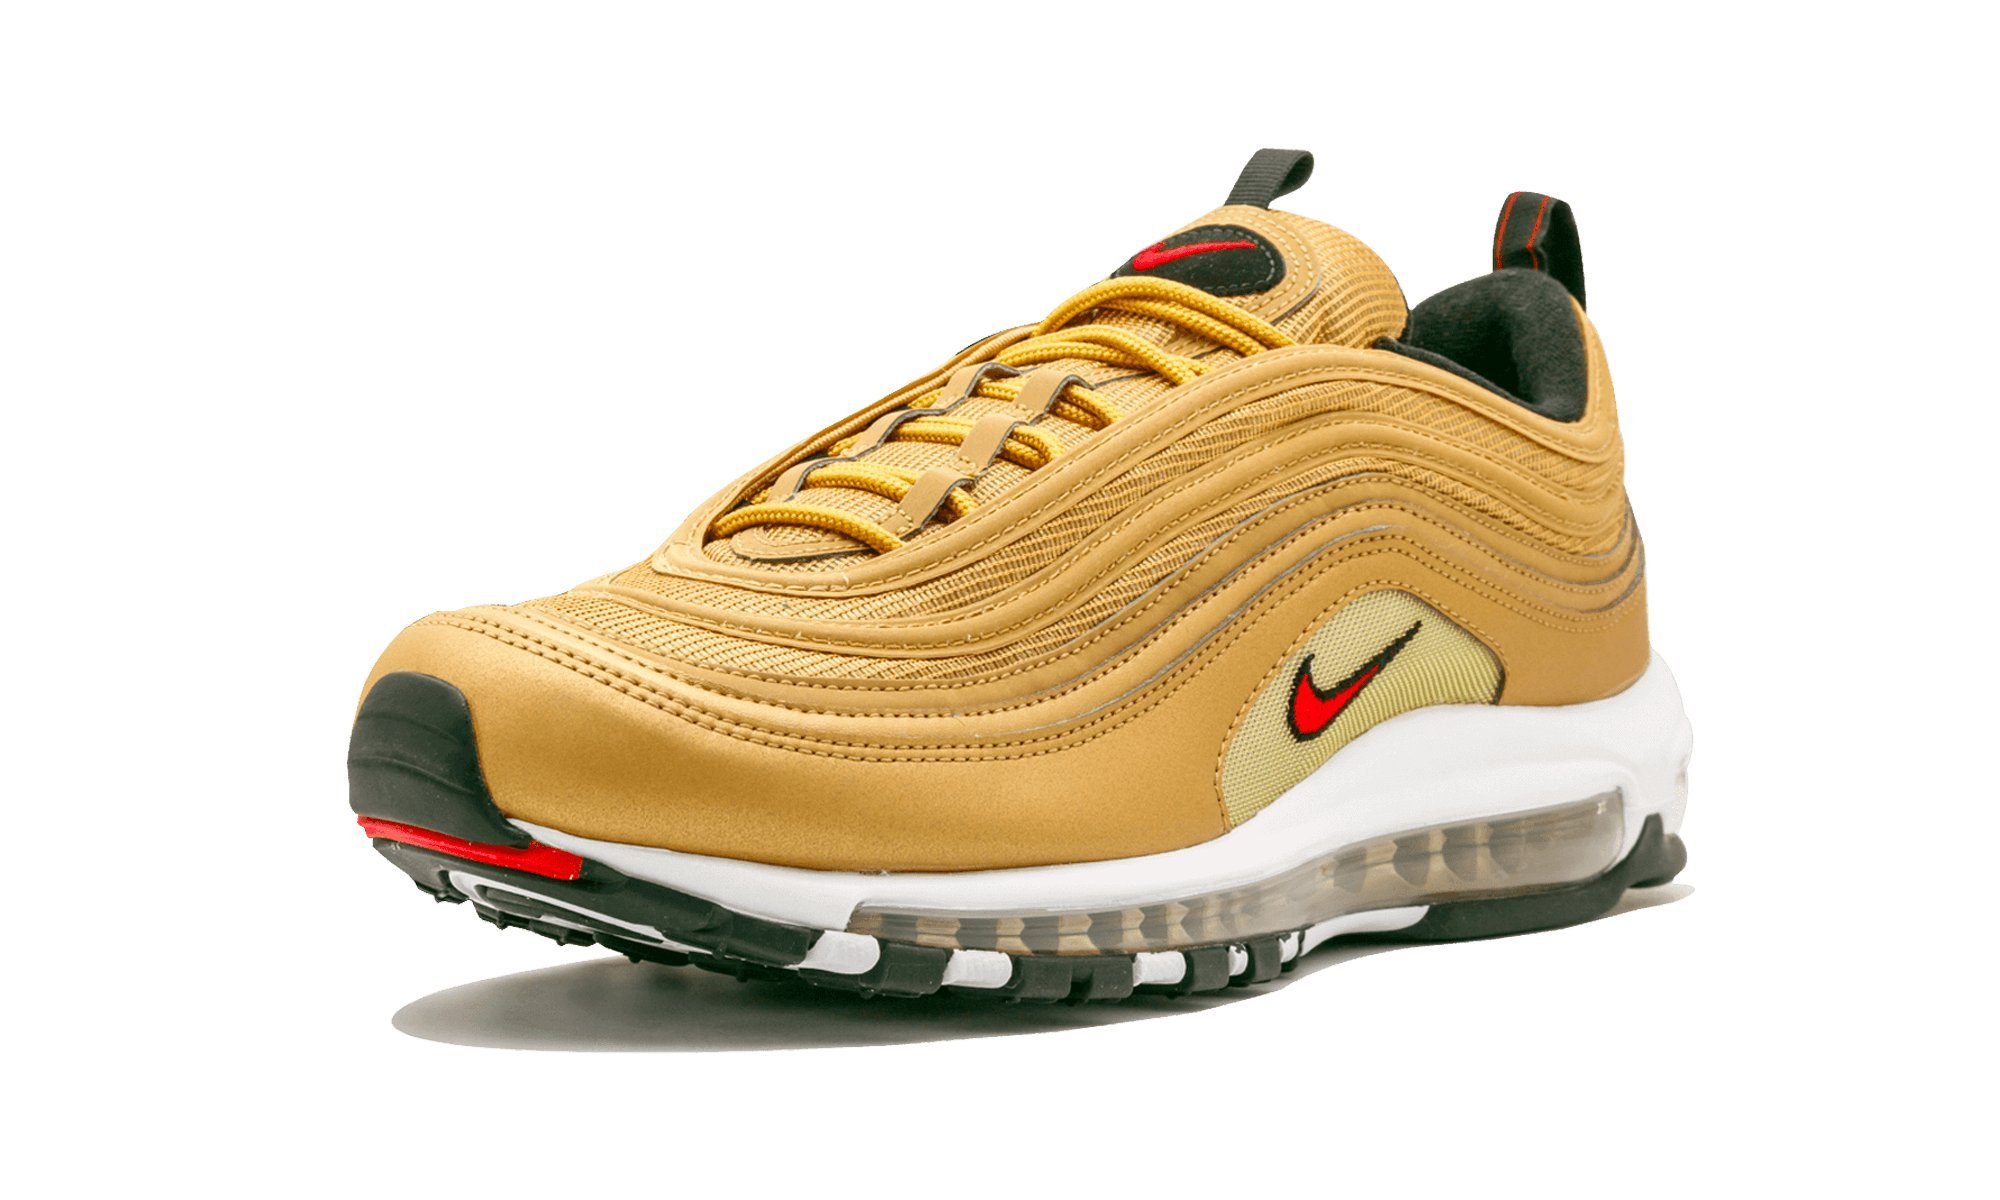 Nike AIR MAX 97 OG QS Mens Fashion Sneakers 884421 700_10.5 Metallic GoldVarsity RED White Black